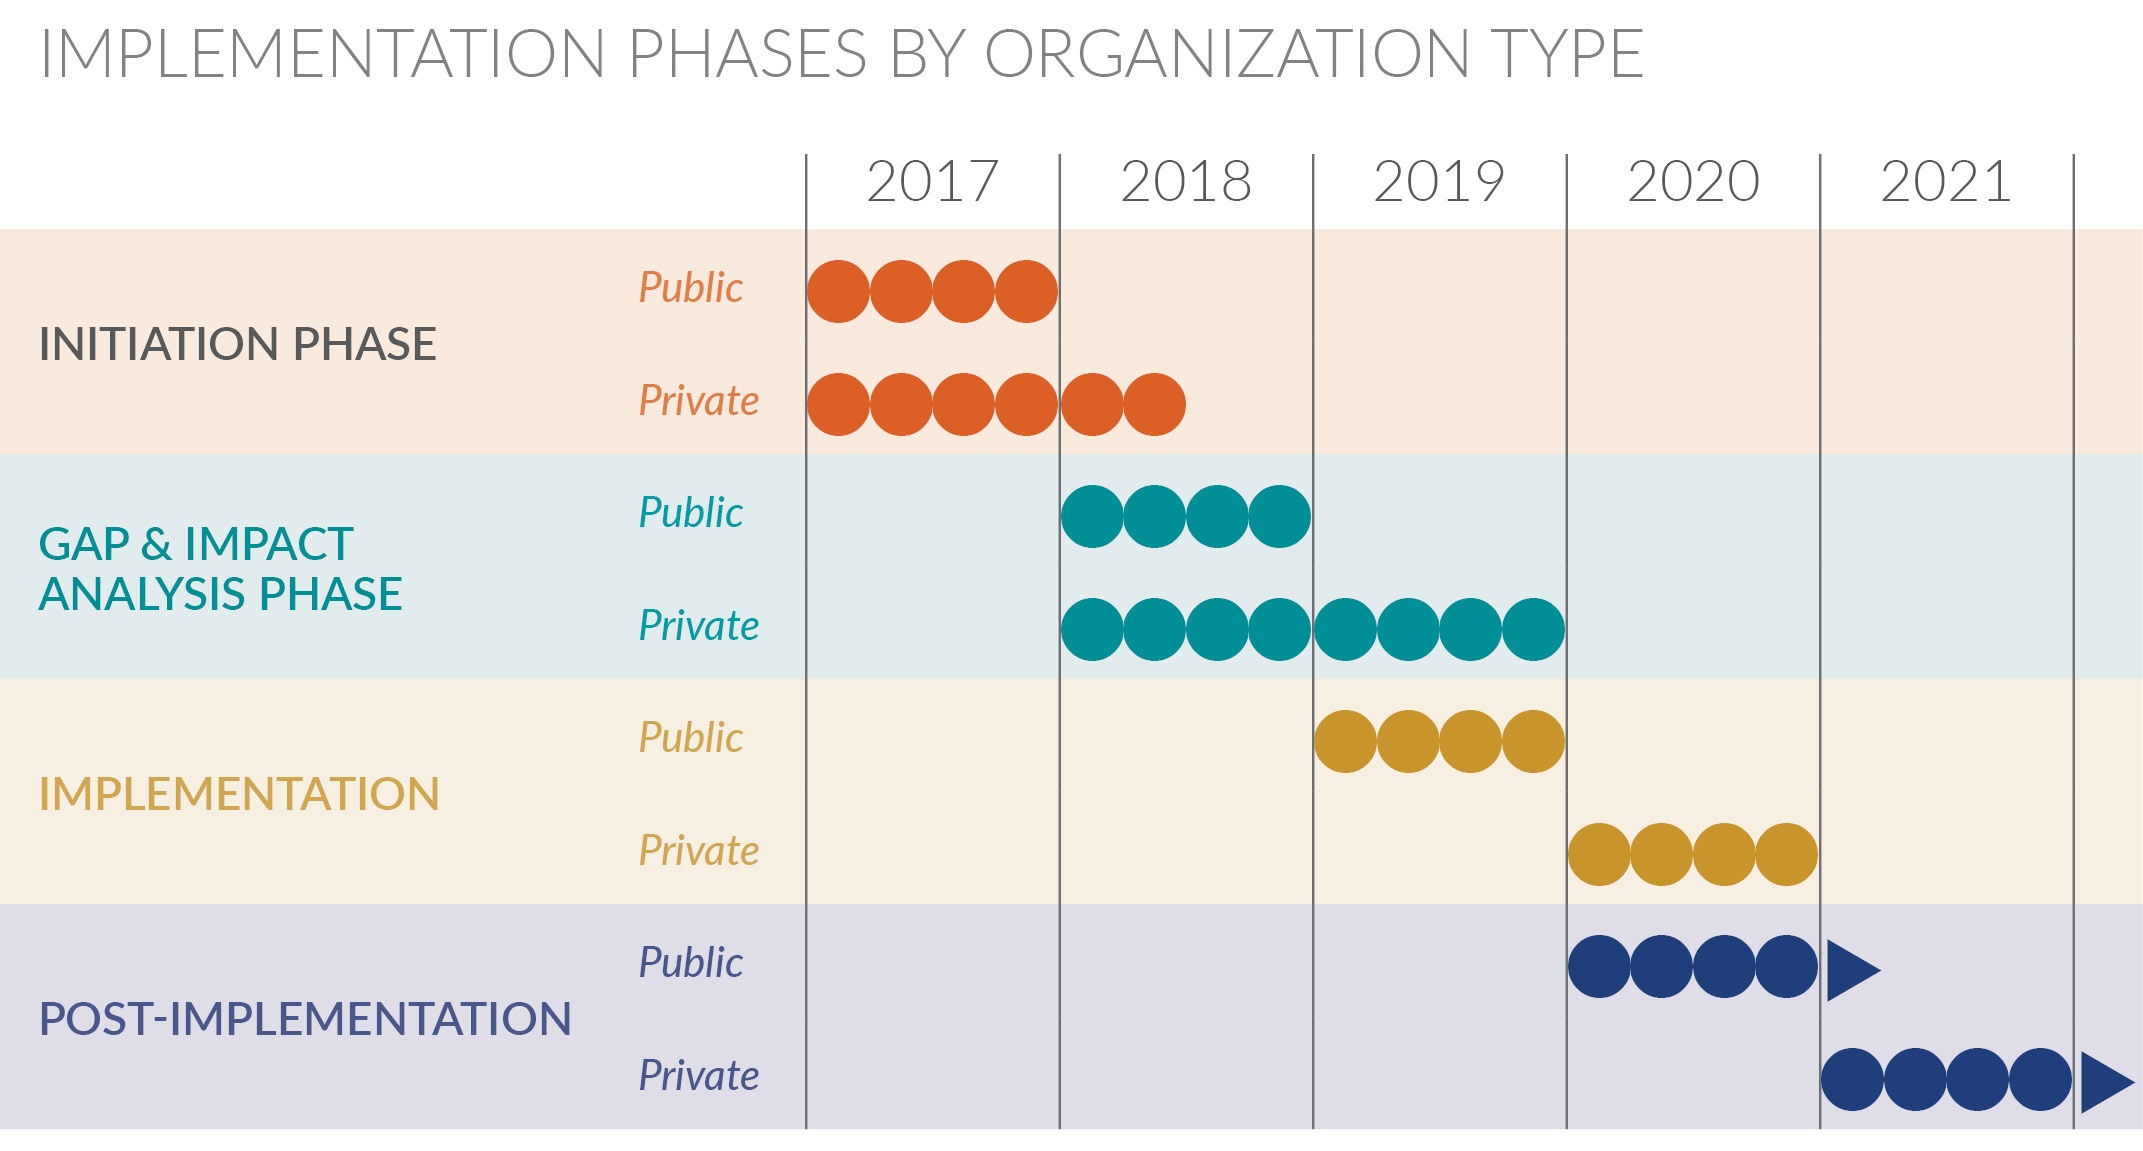 Lease accounting table indicating implementation phases by organization type.